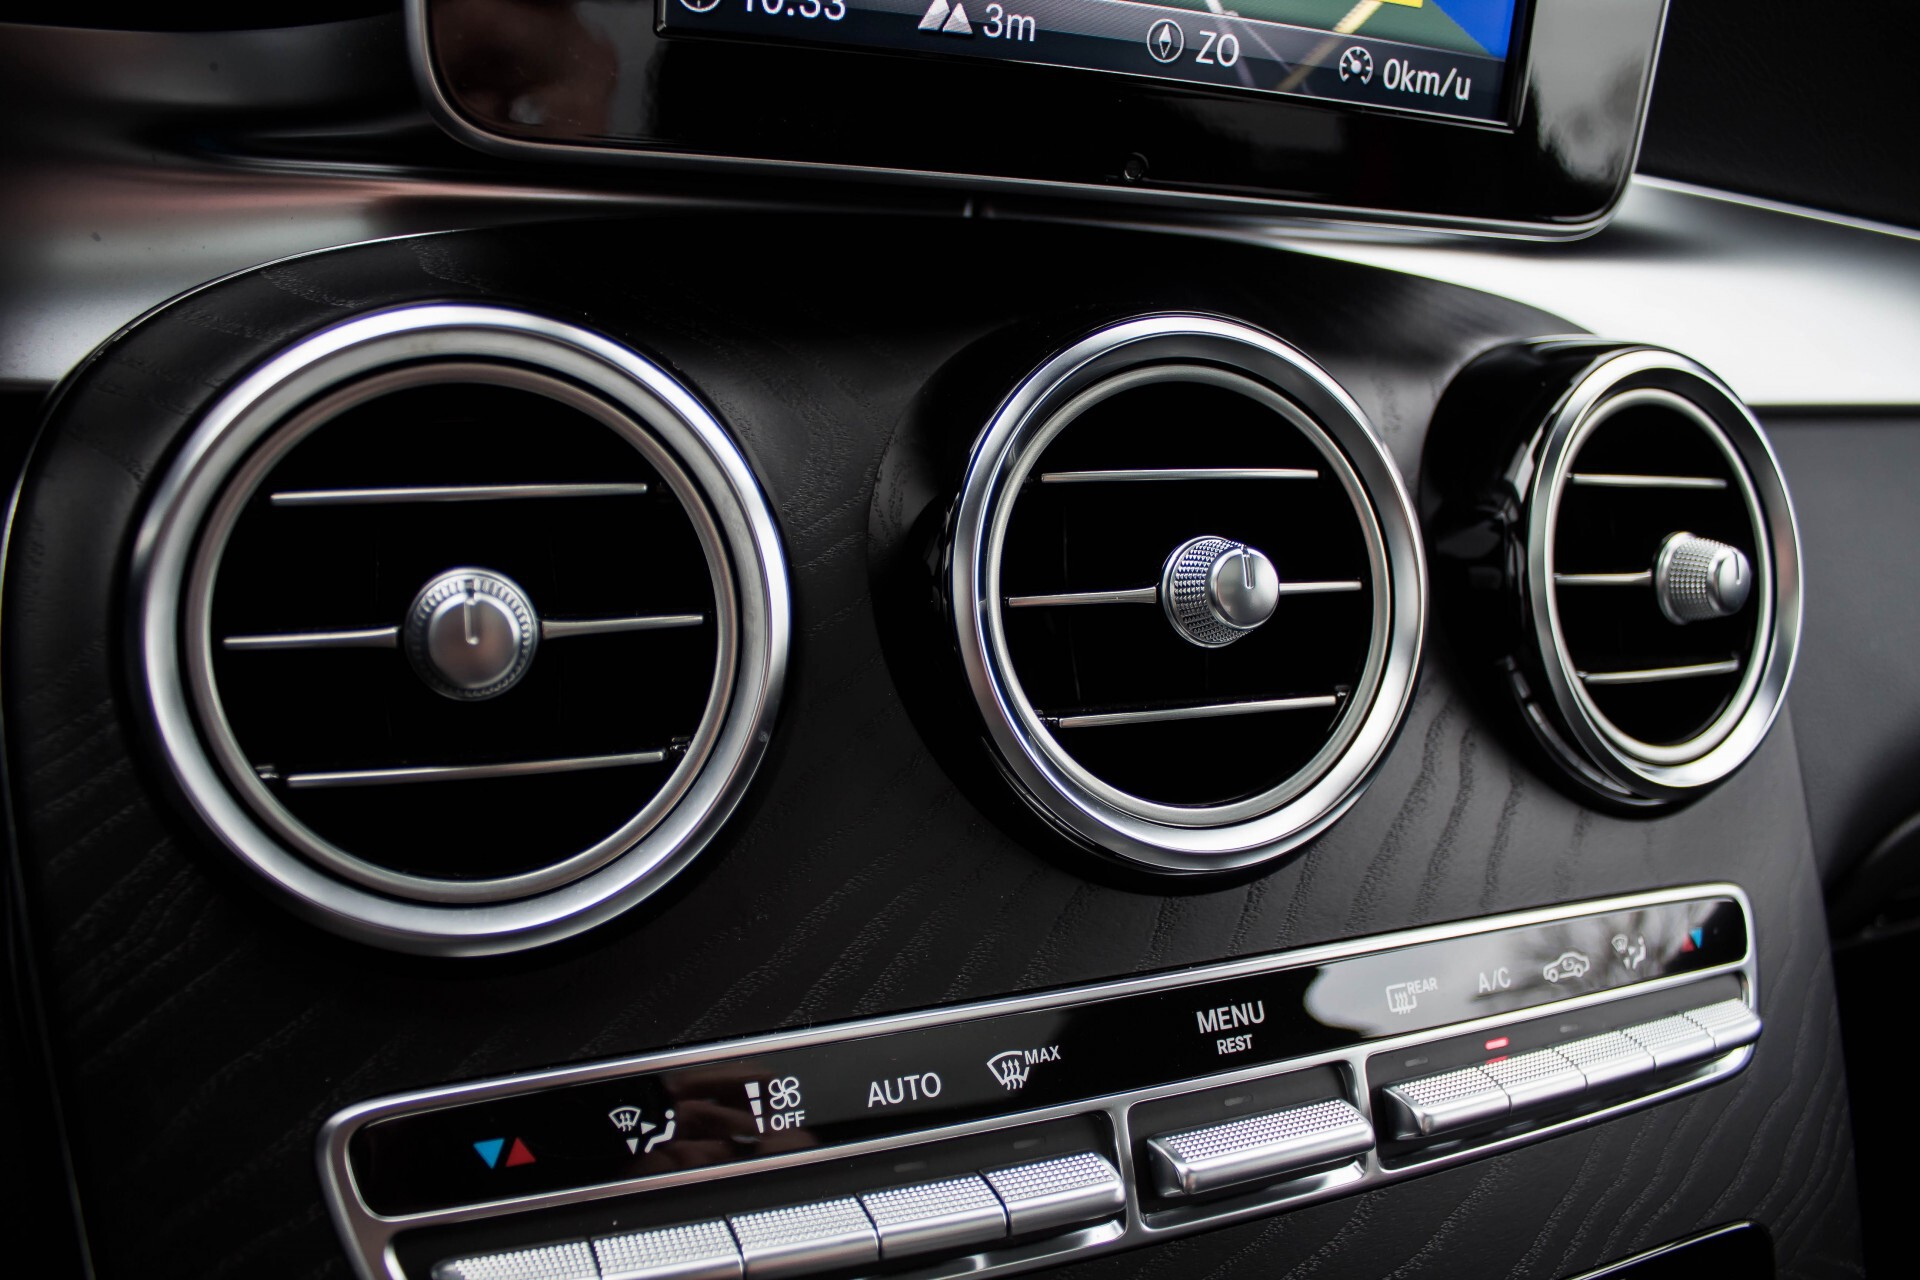 Mercedes-Benz GLC-Klasse 300 4-M AMG Panorama Distronic/Keyless/Burmester/Memory/Night Aut9 Foto 17